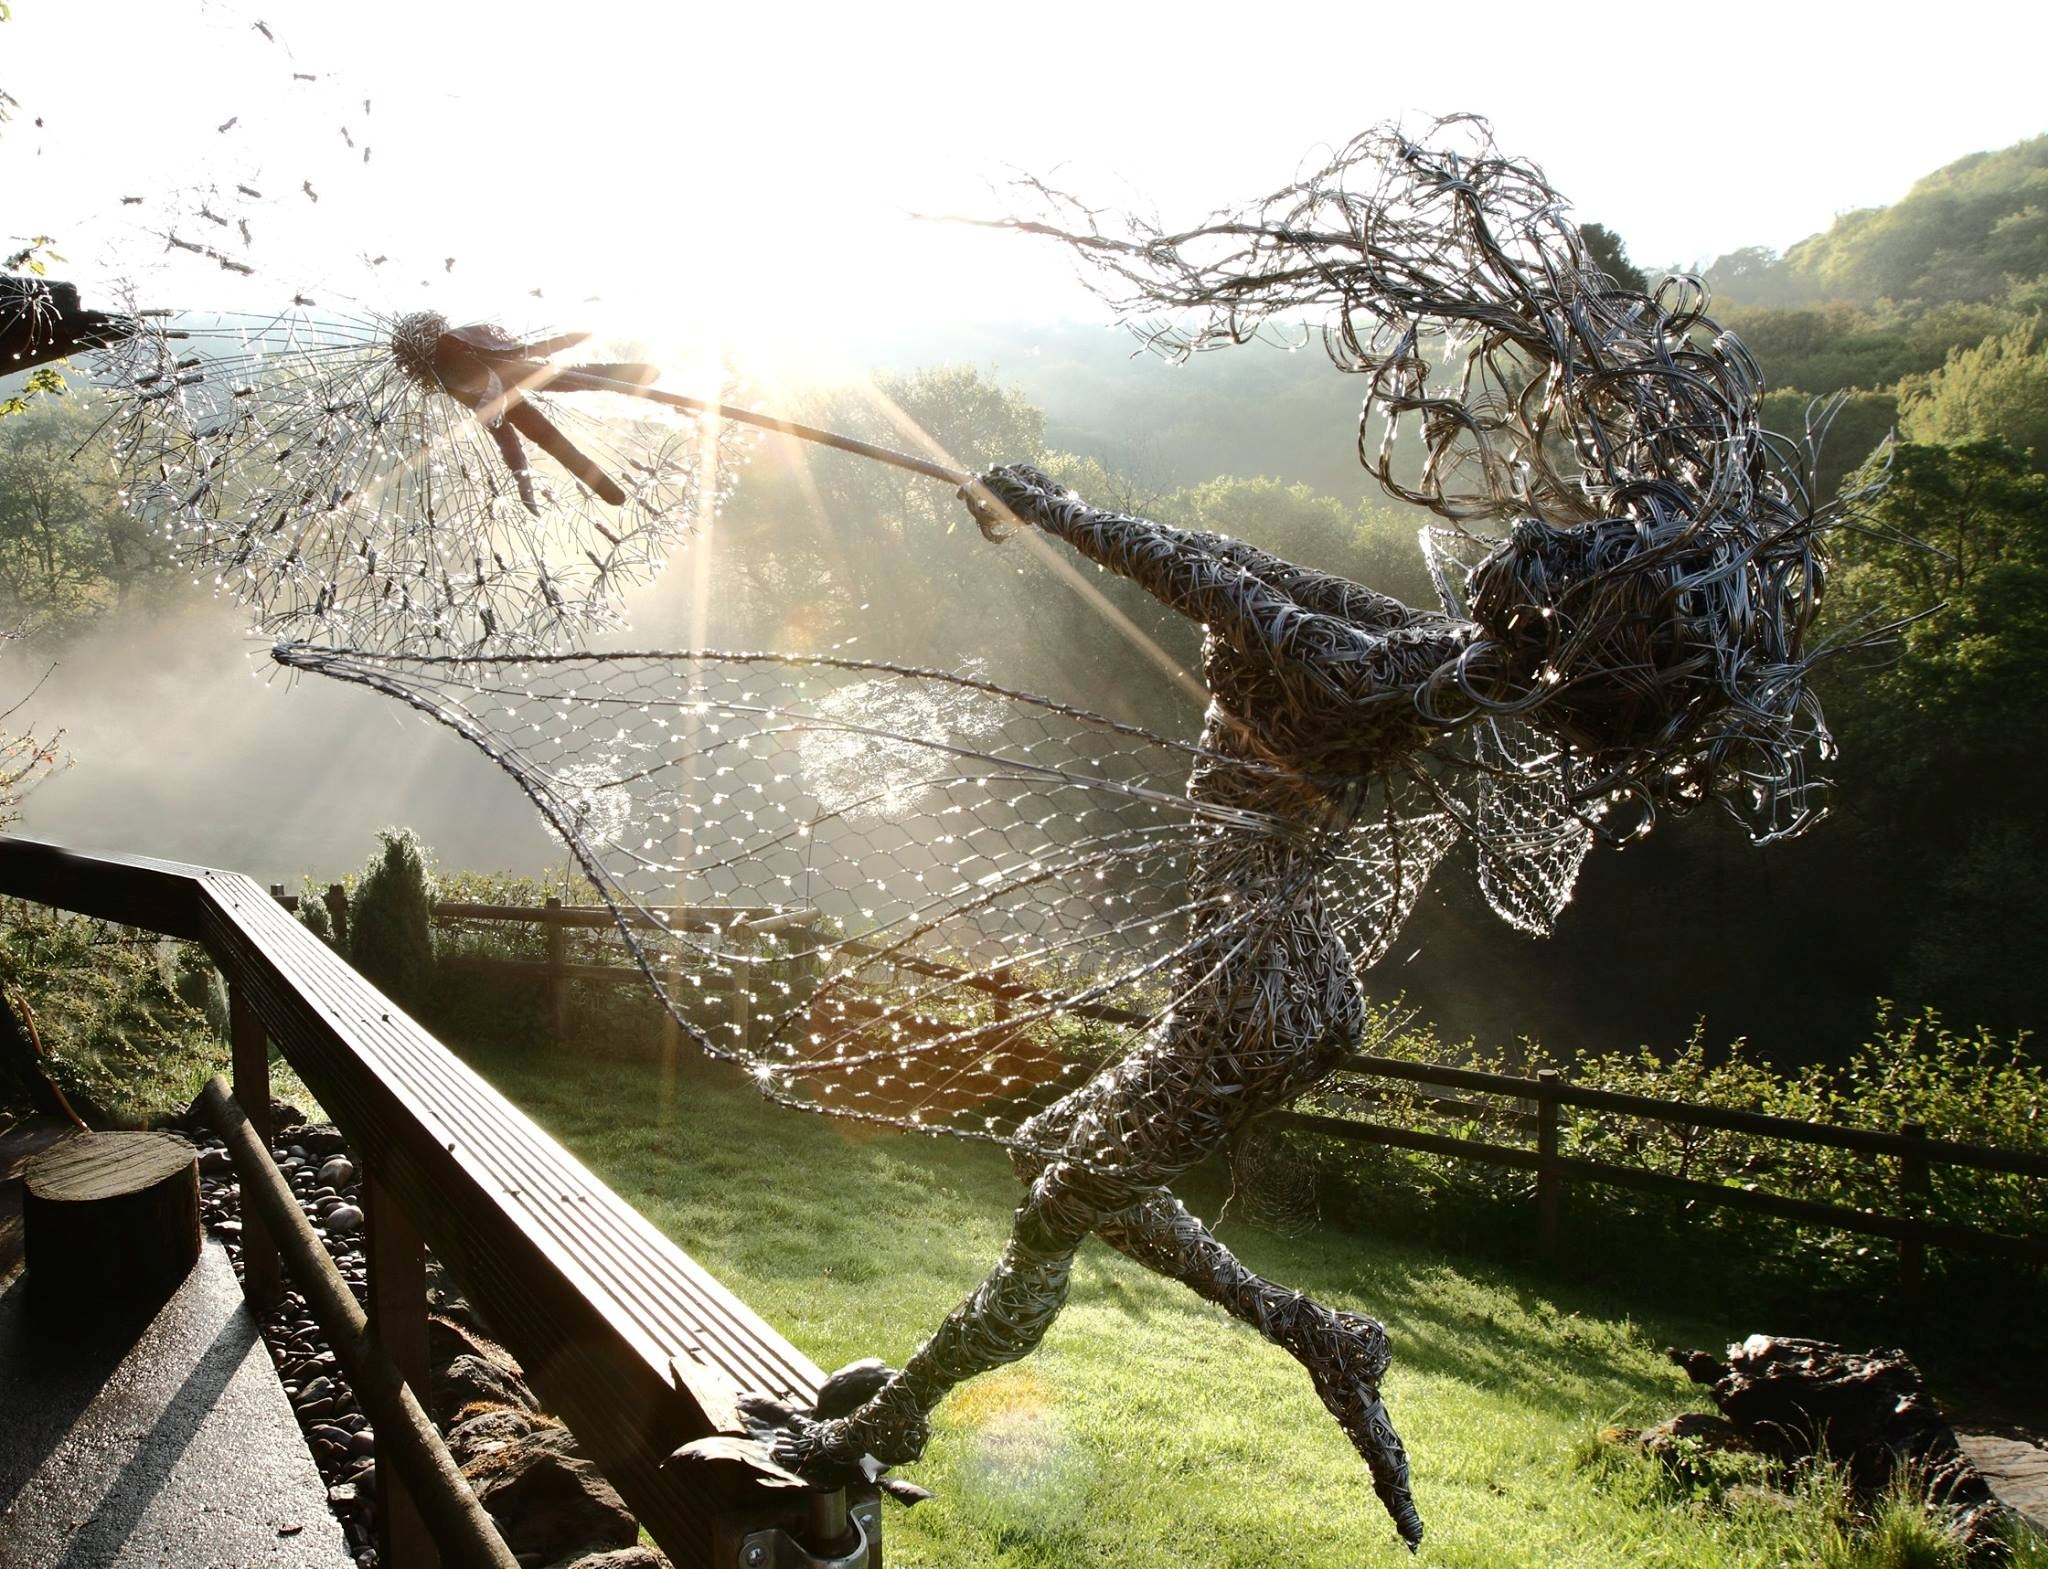 '1 O'clock Wish' by Robin Wight – wire sculpture